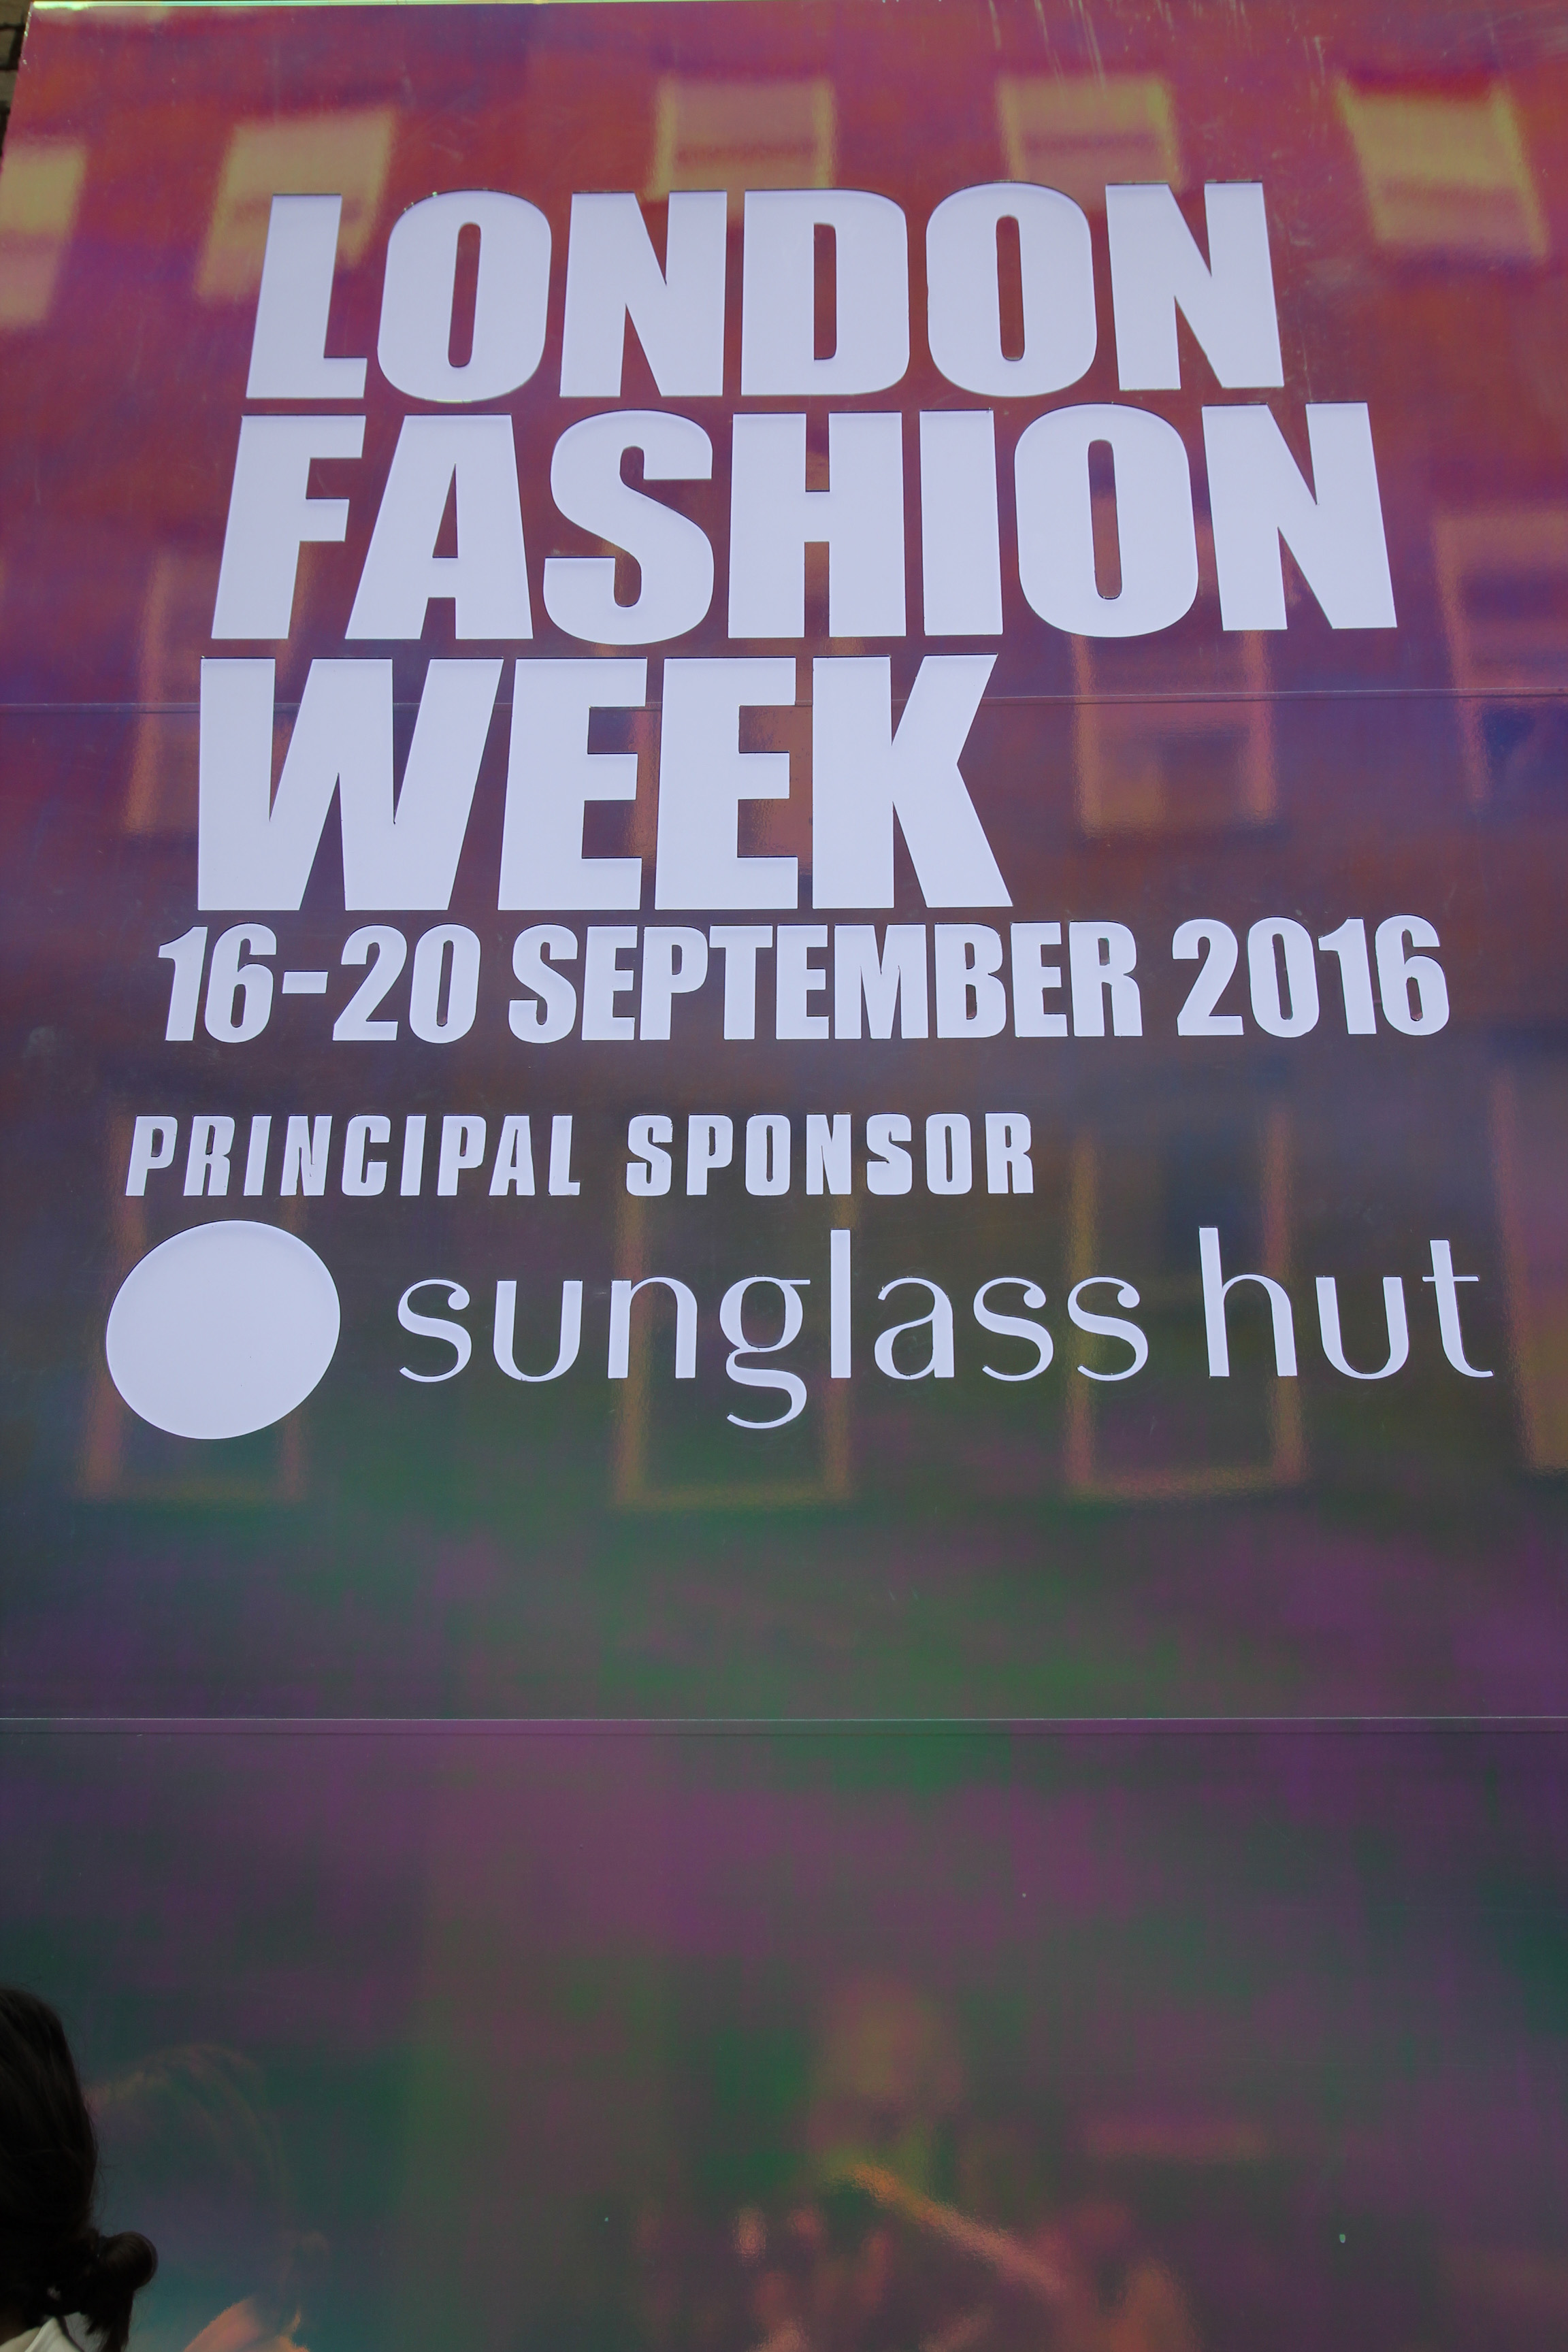 London fashion week with leslie huhn